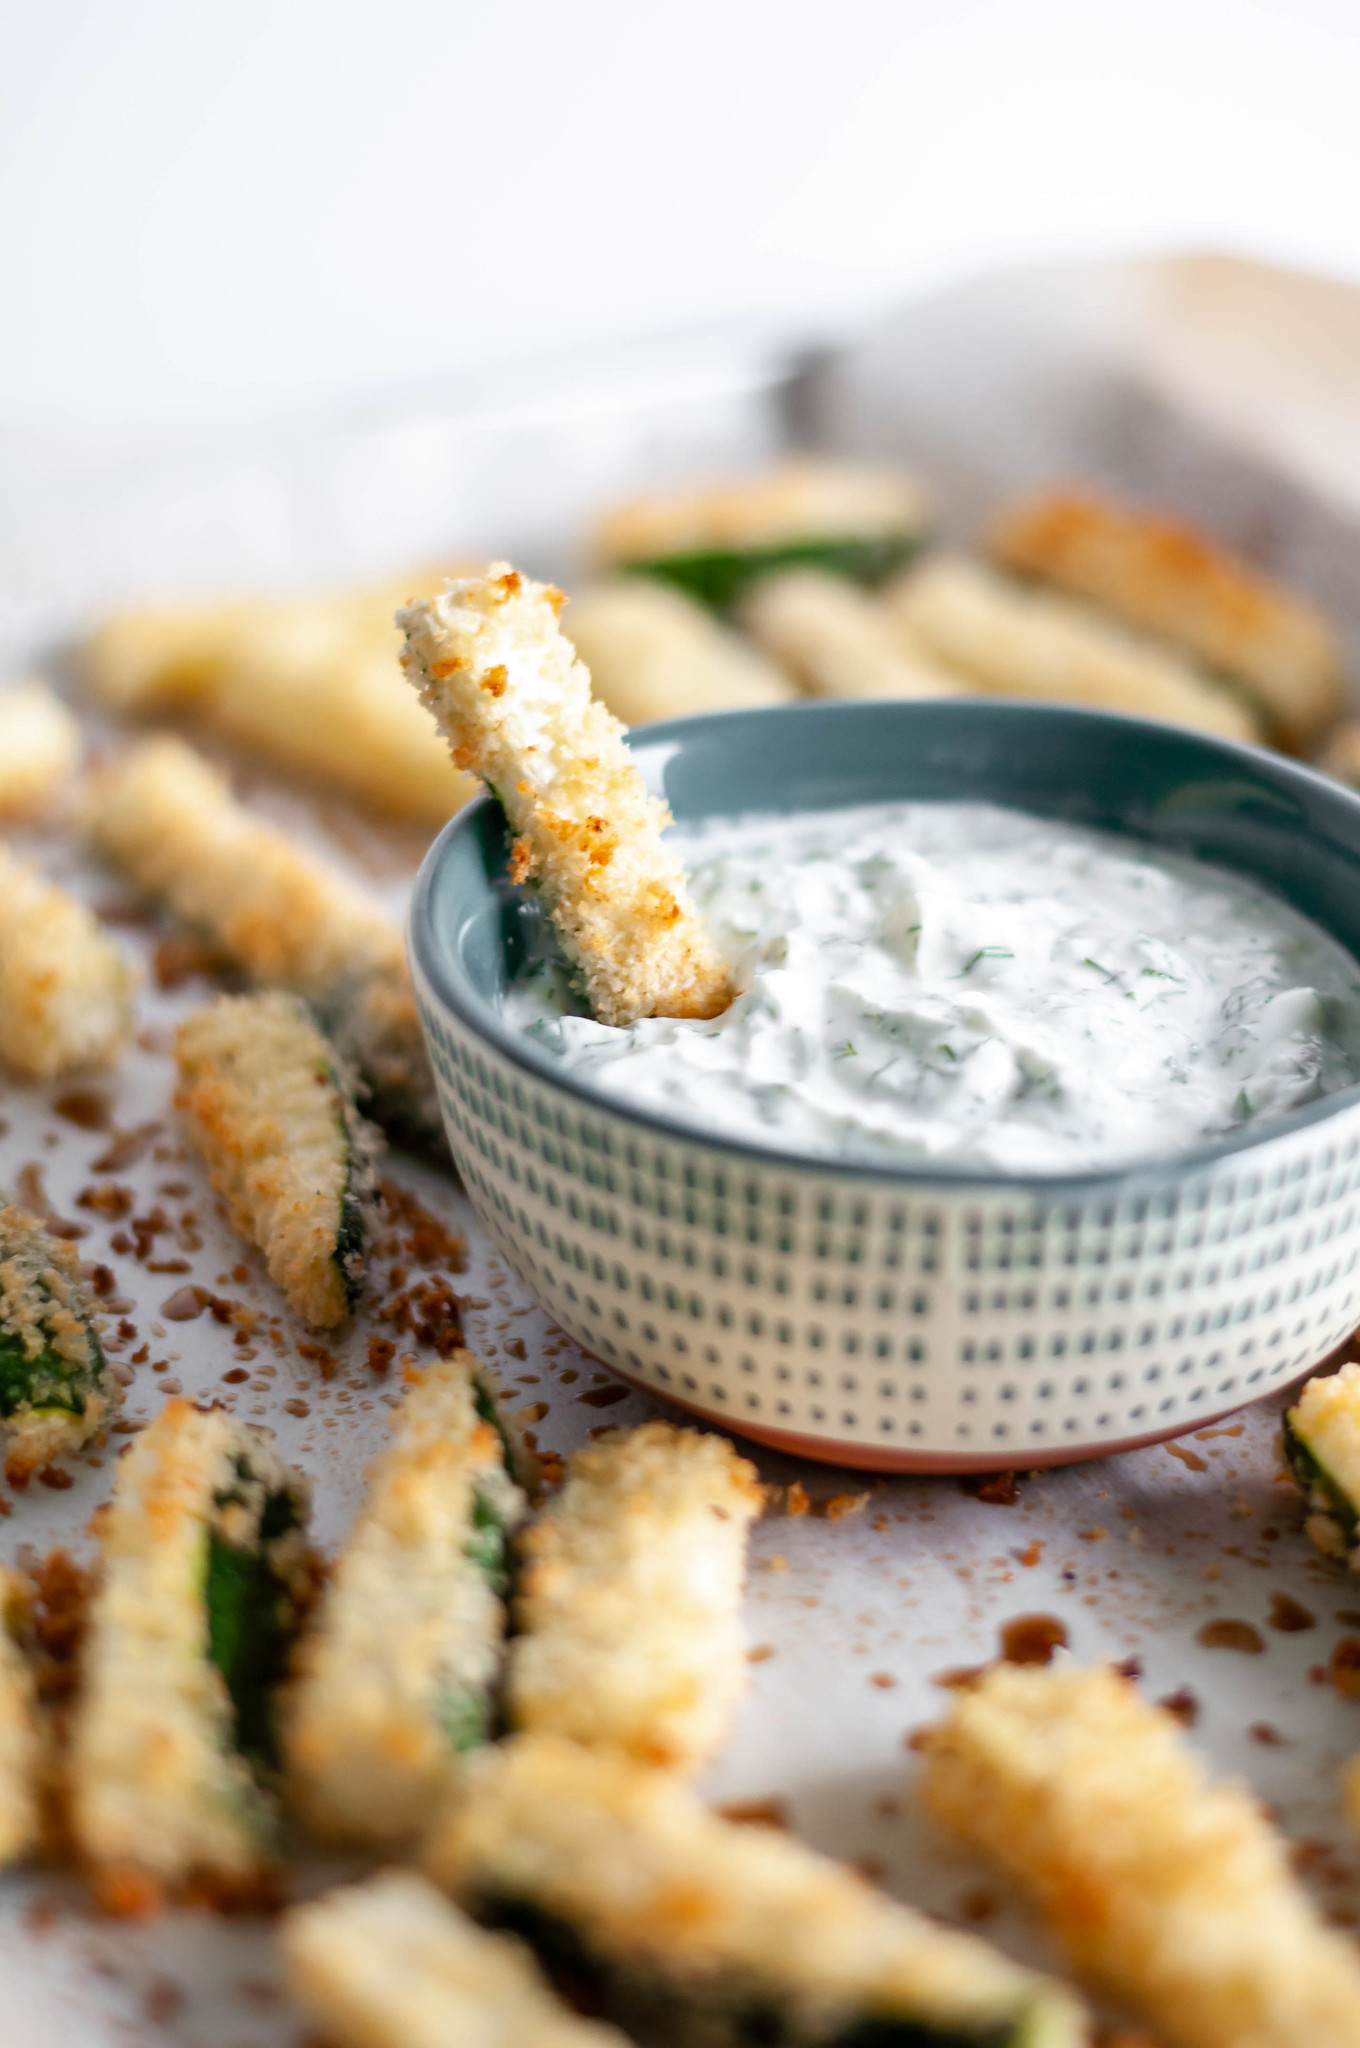 Crispy Zucchini Fries with Dill Feta Dip are super crispy and oven baked to perfection.